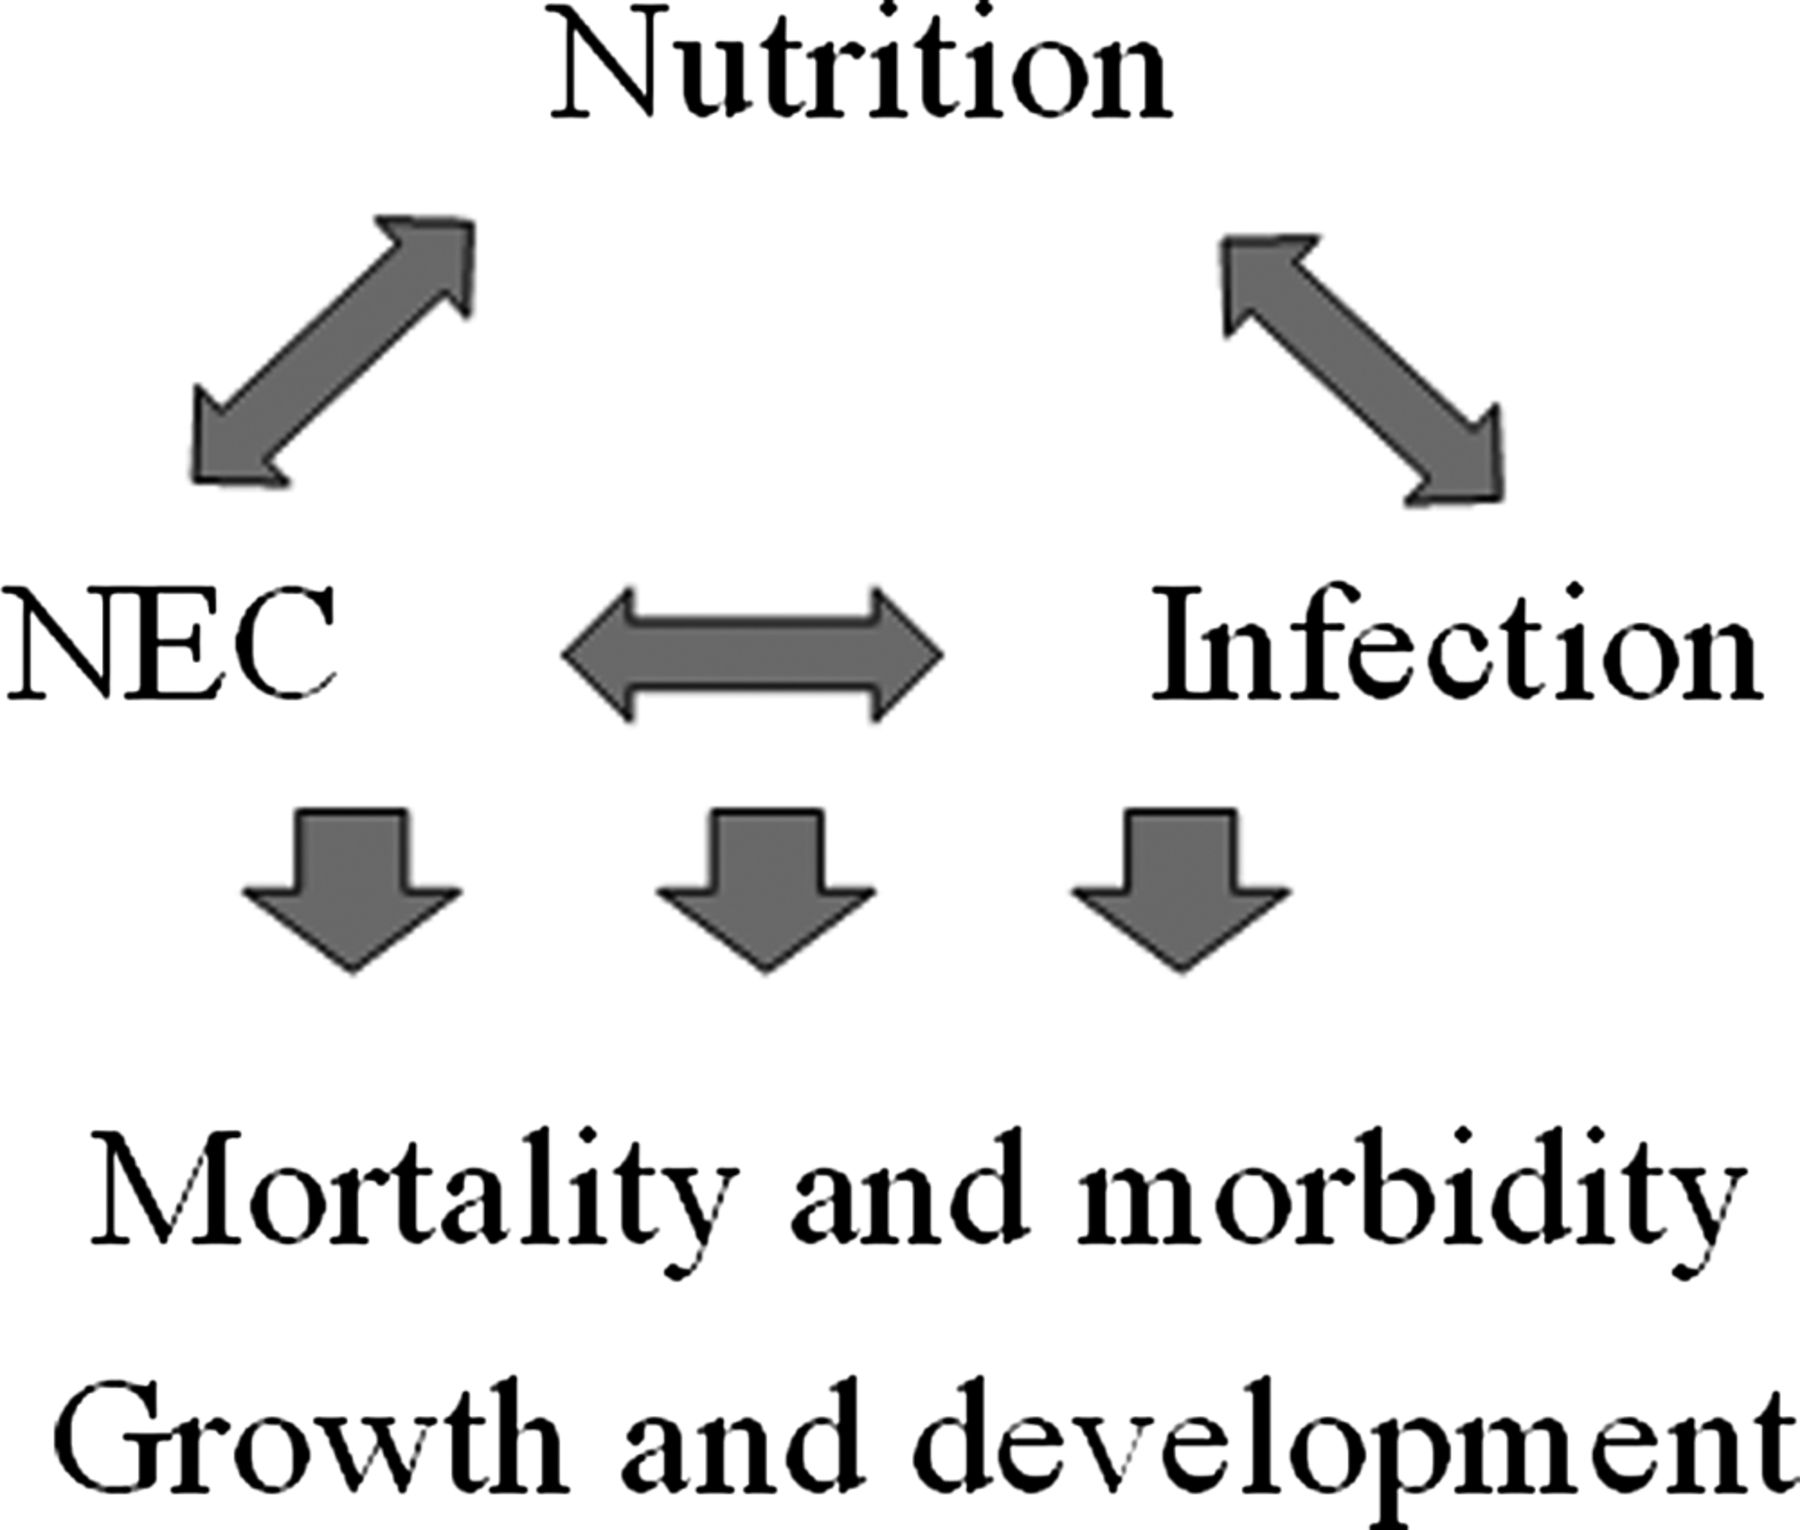 Early enteral feeding strategies for very preterm infants